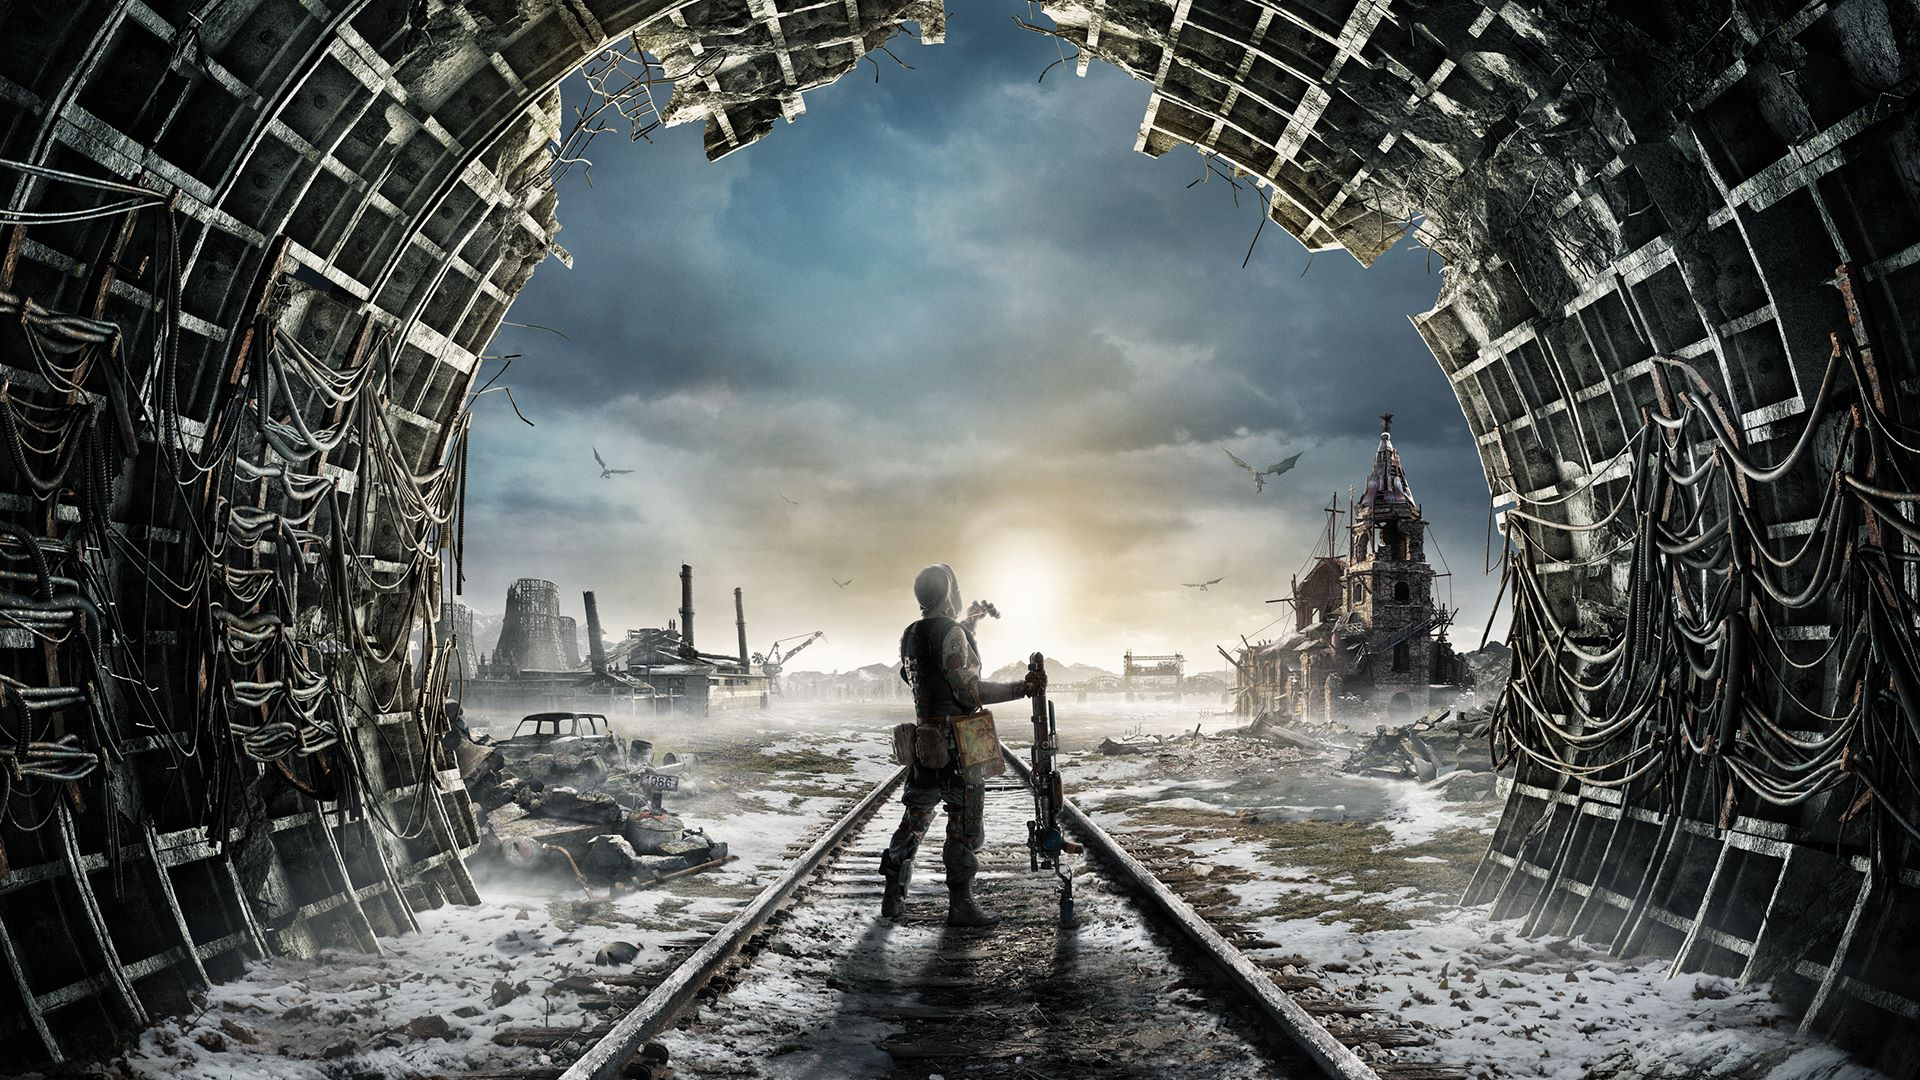 Metro Exodus Steam Keys Frozen; Deep Silver Says Items Were Looted From Factory